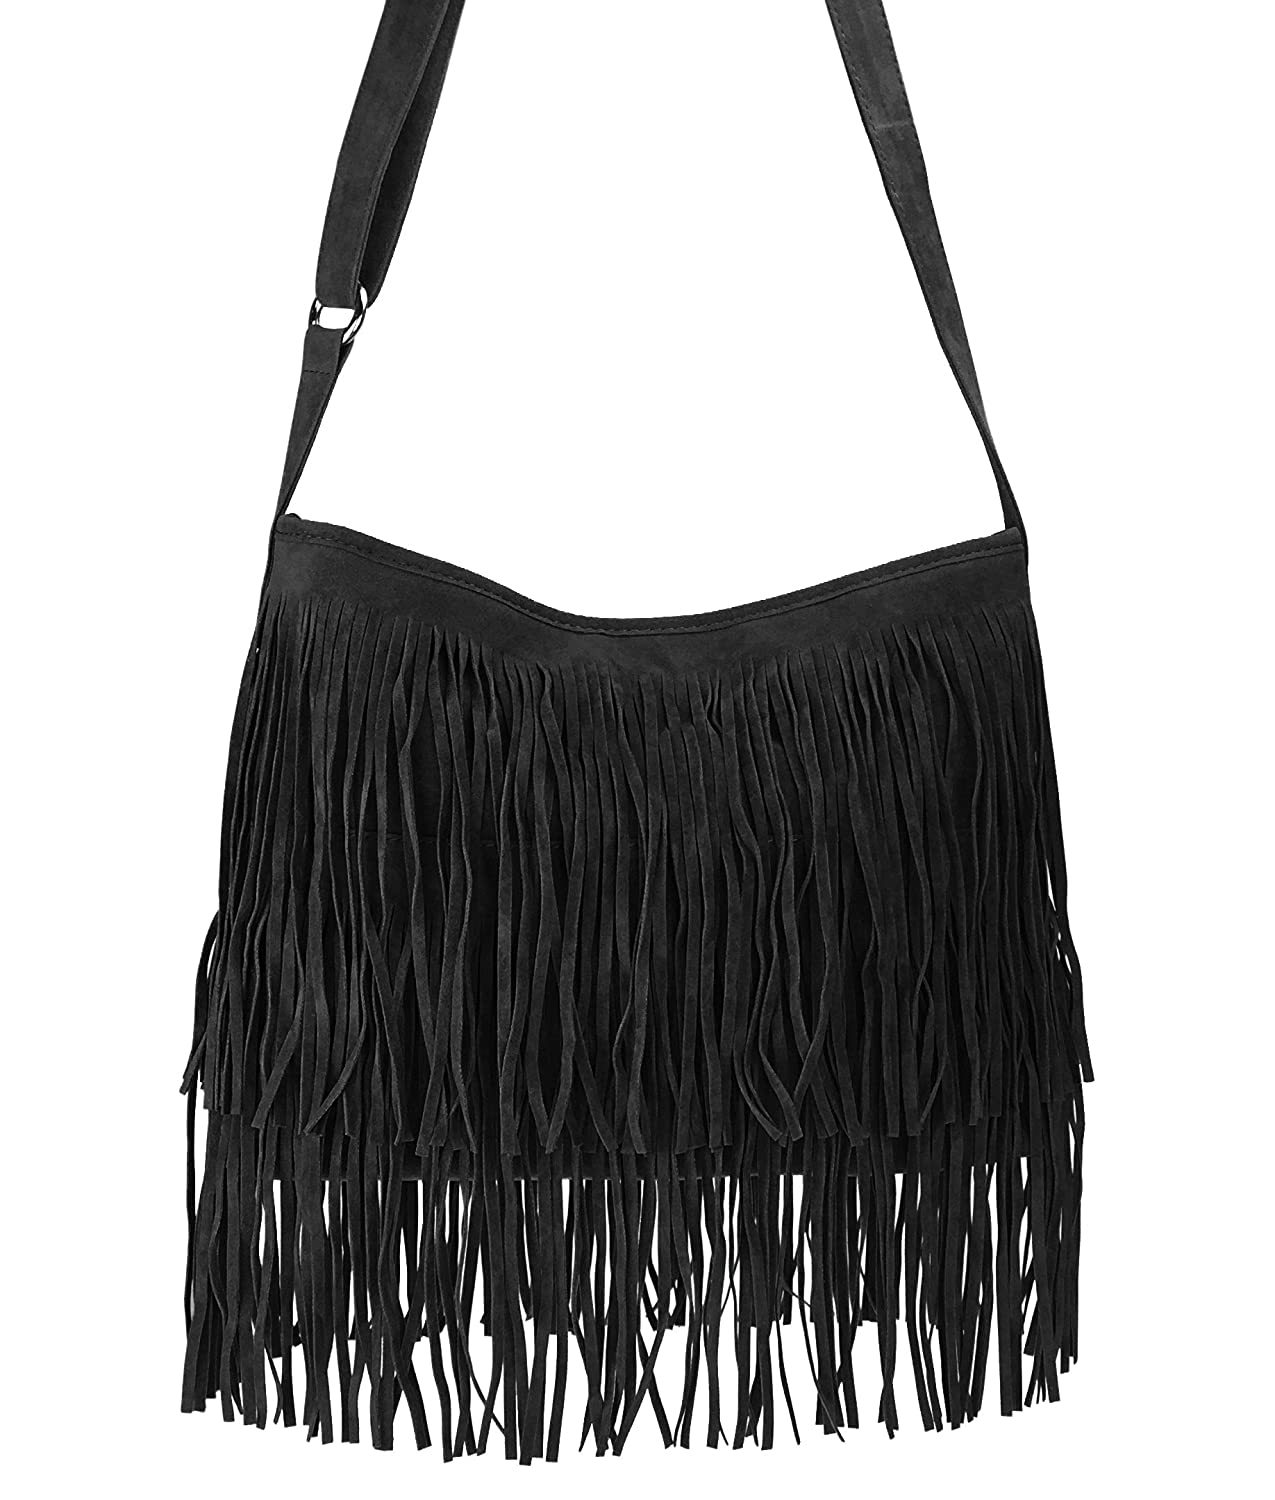 Amazon.com: Hoxis Tassel Faux Suede Leather Hobo Cross Body ...